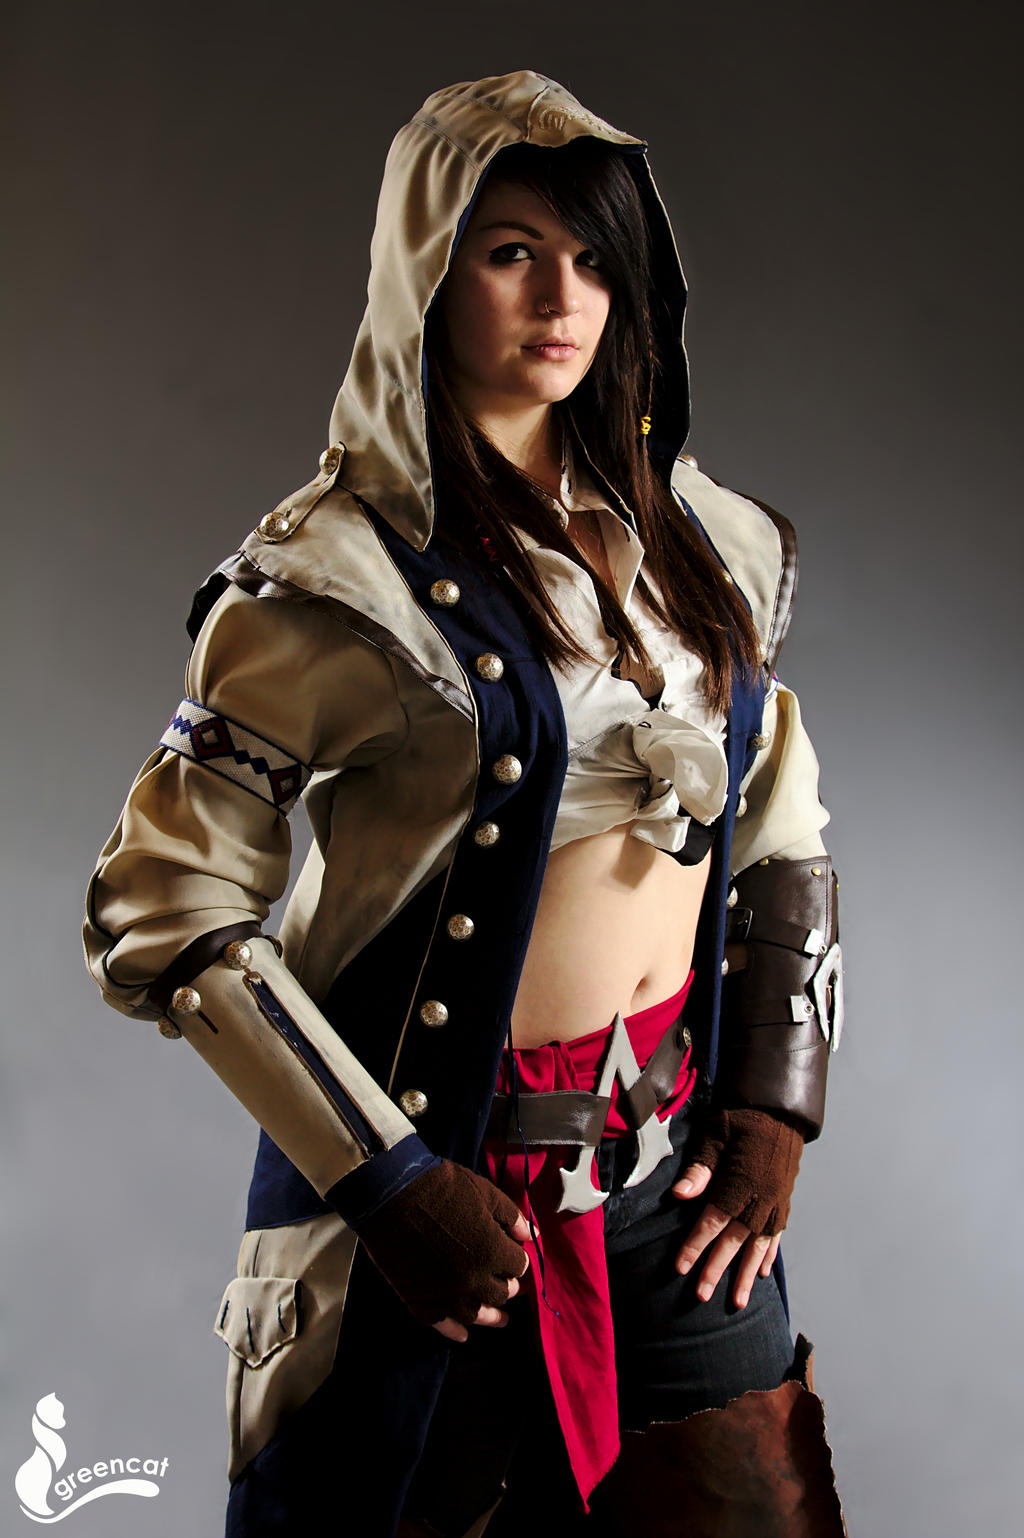 Connor Kenway female - Assassin's Creed III by greengreencat